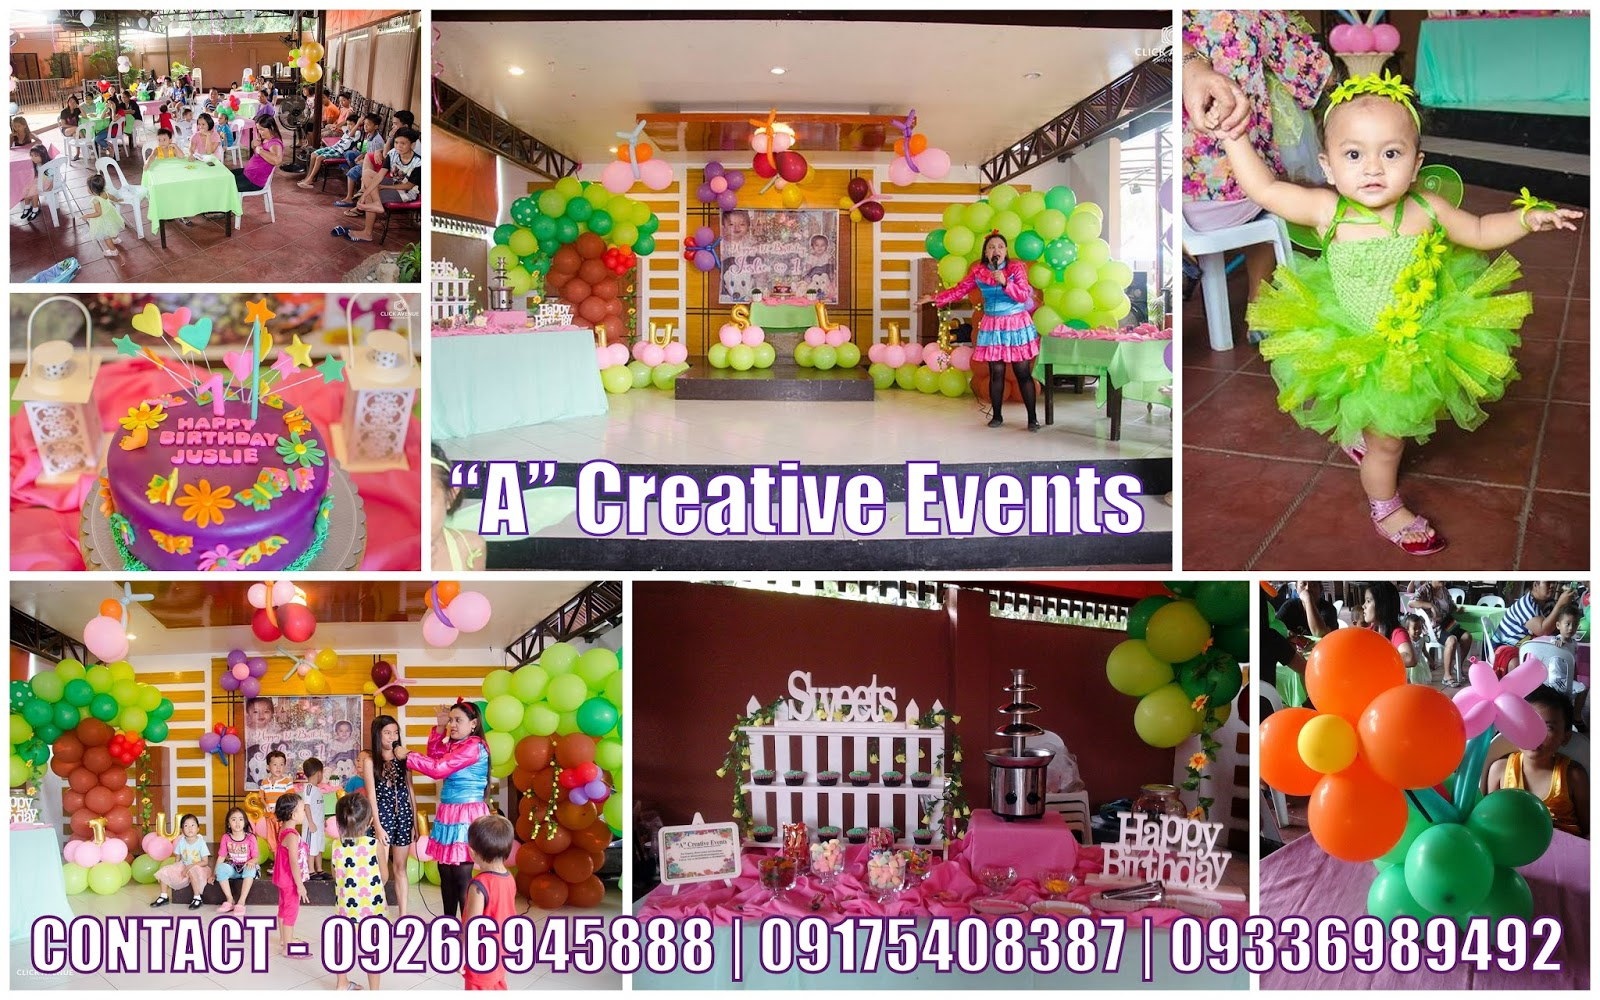 A Creative Events Formerly Athena Miel S Balloons Bubbles And Party Needs Enchanted Garden Theme For Juslie S 1st Birthday Party